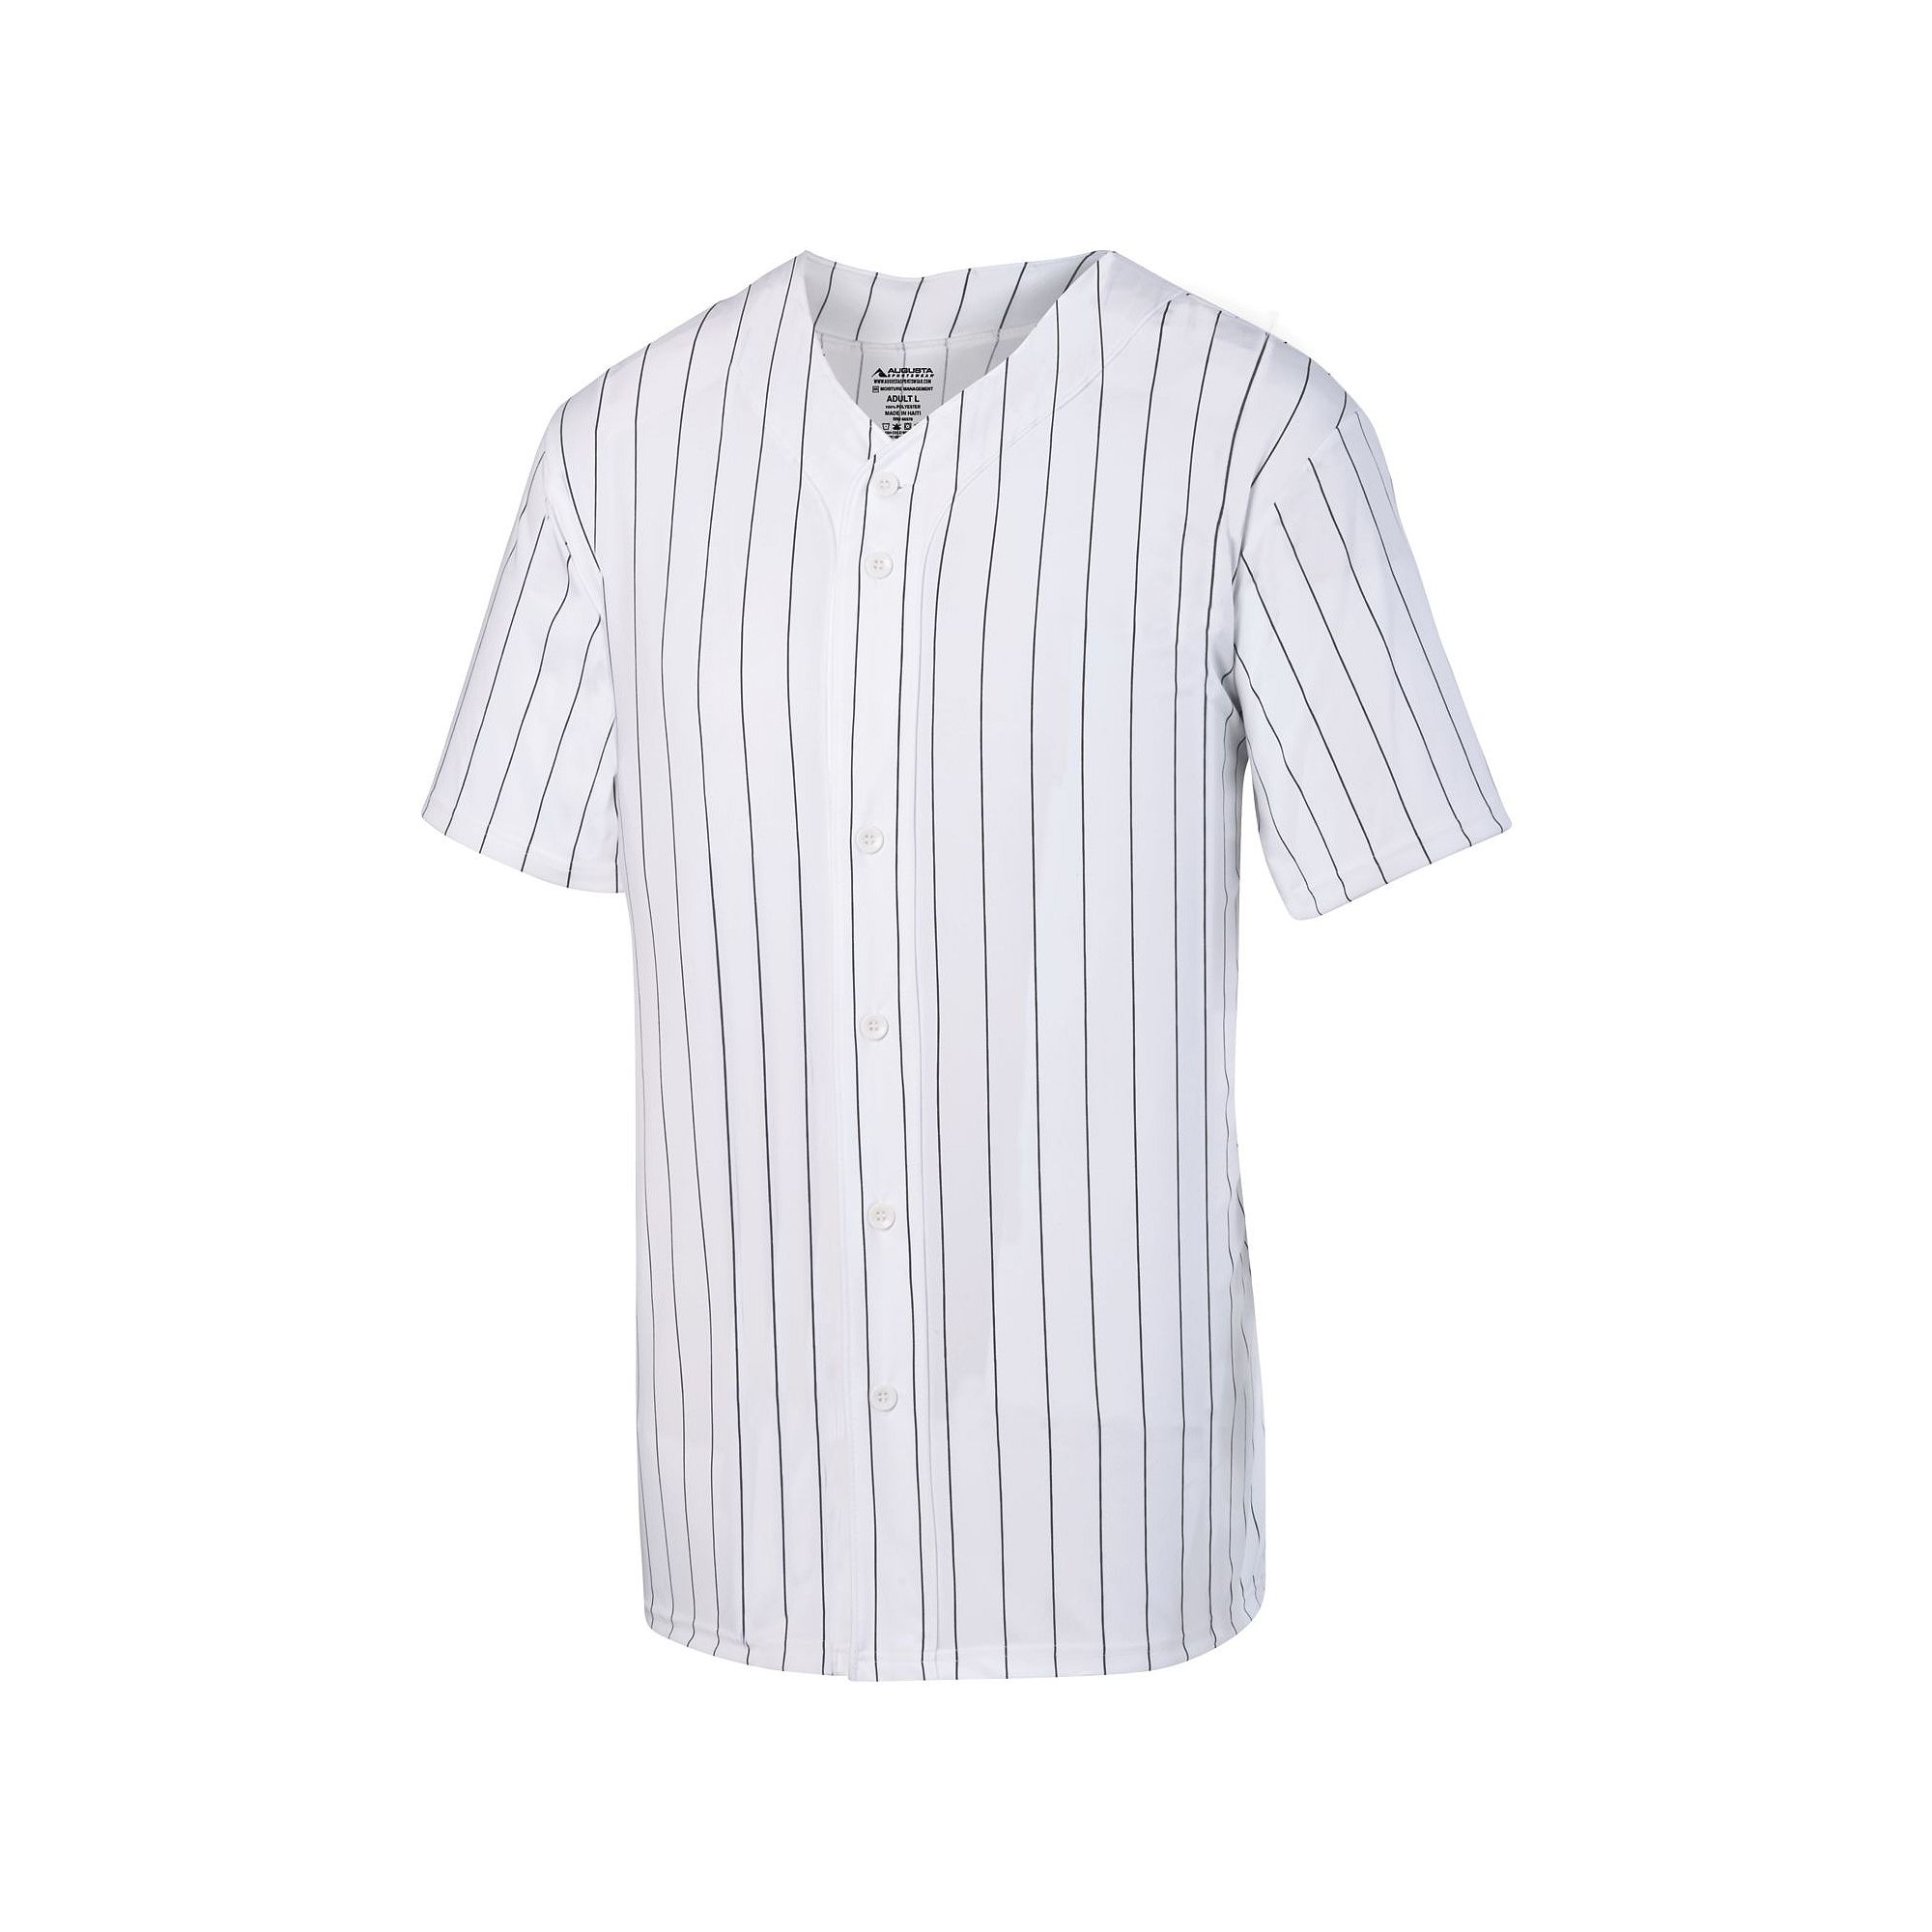 a97df09e0d90 Baseball Shirts and Jerseys from Augusta Sportswear